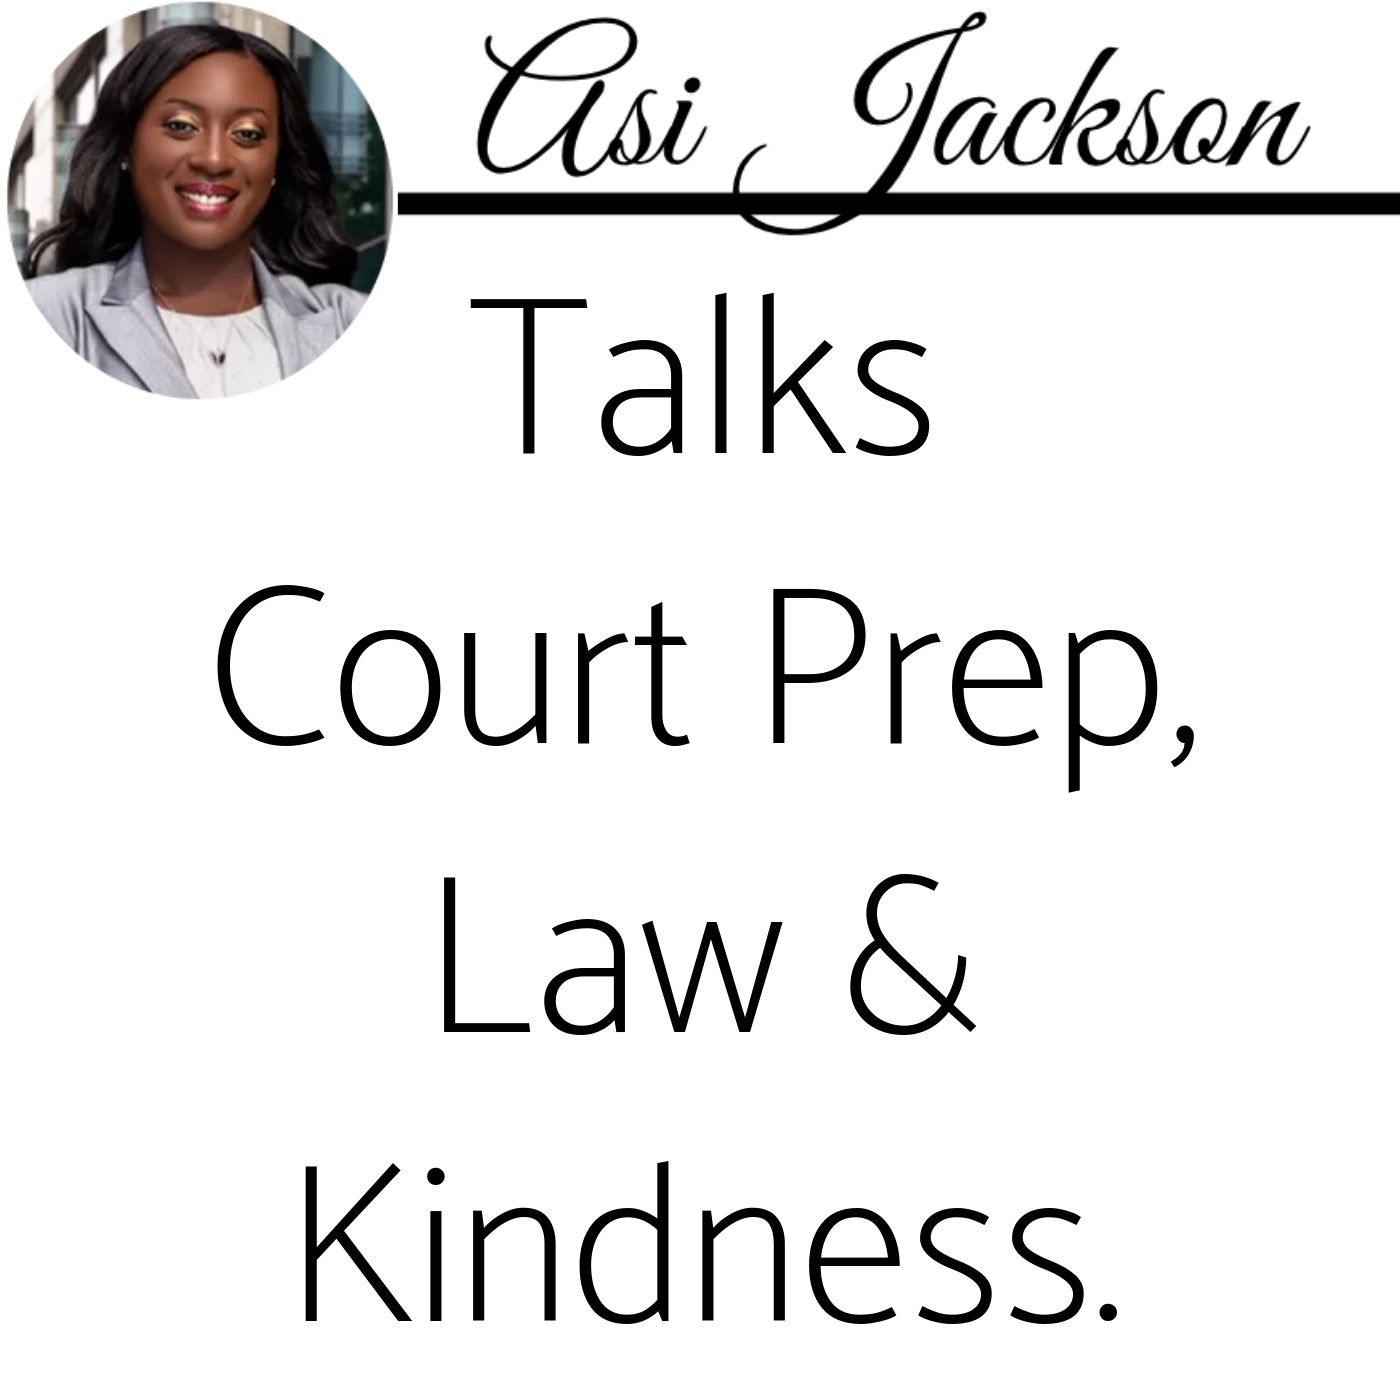 Episode 56: Part 3 of 3 - Asi Jackson Talks Court Prep, Law & Kindness.